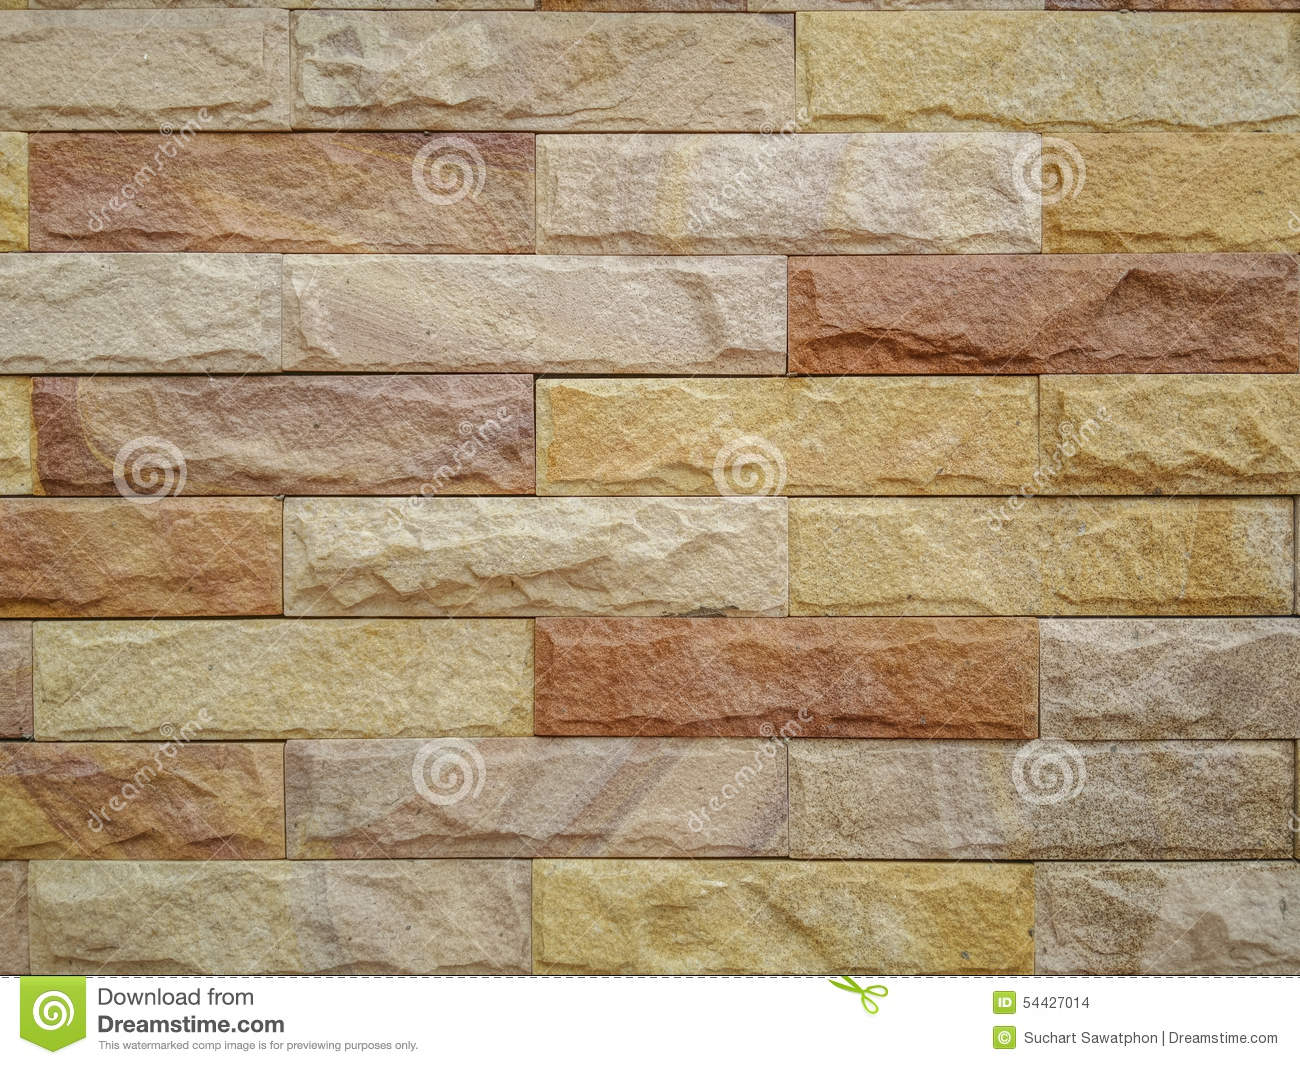 Badezimmer Fliesen Sand Fliesen Sandstein Interesting Sandstone With Fliesen